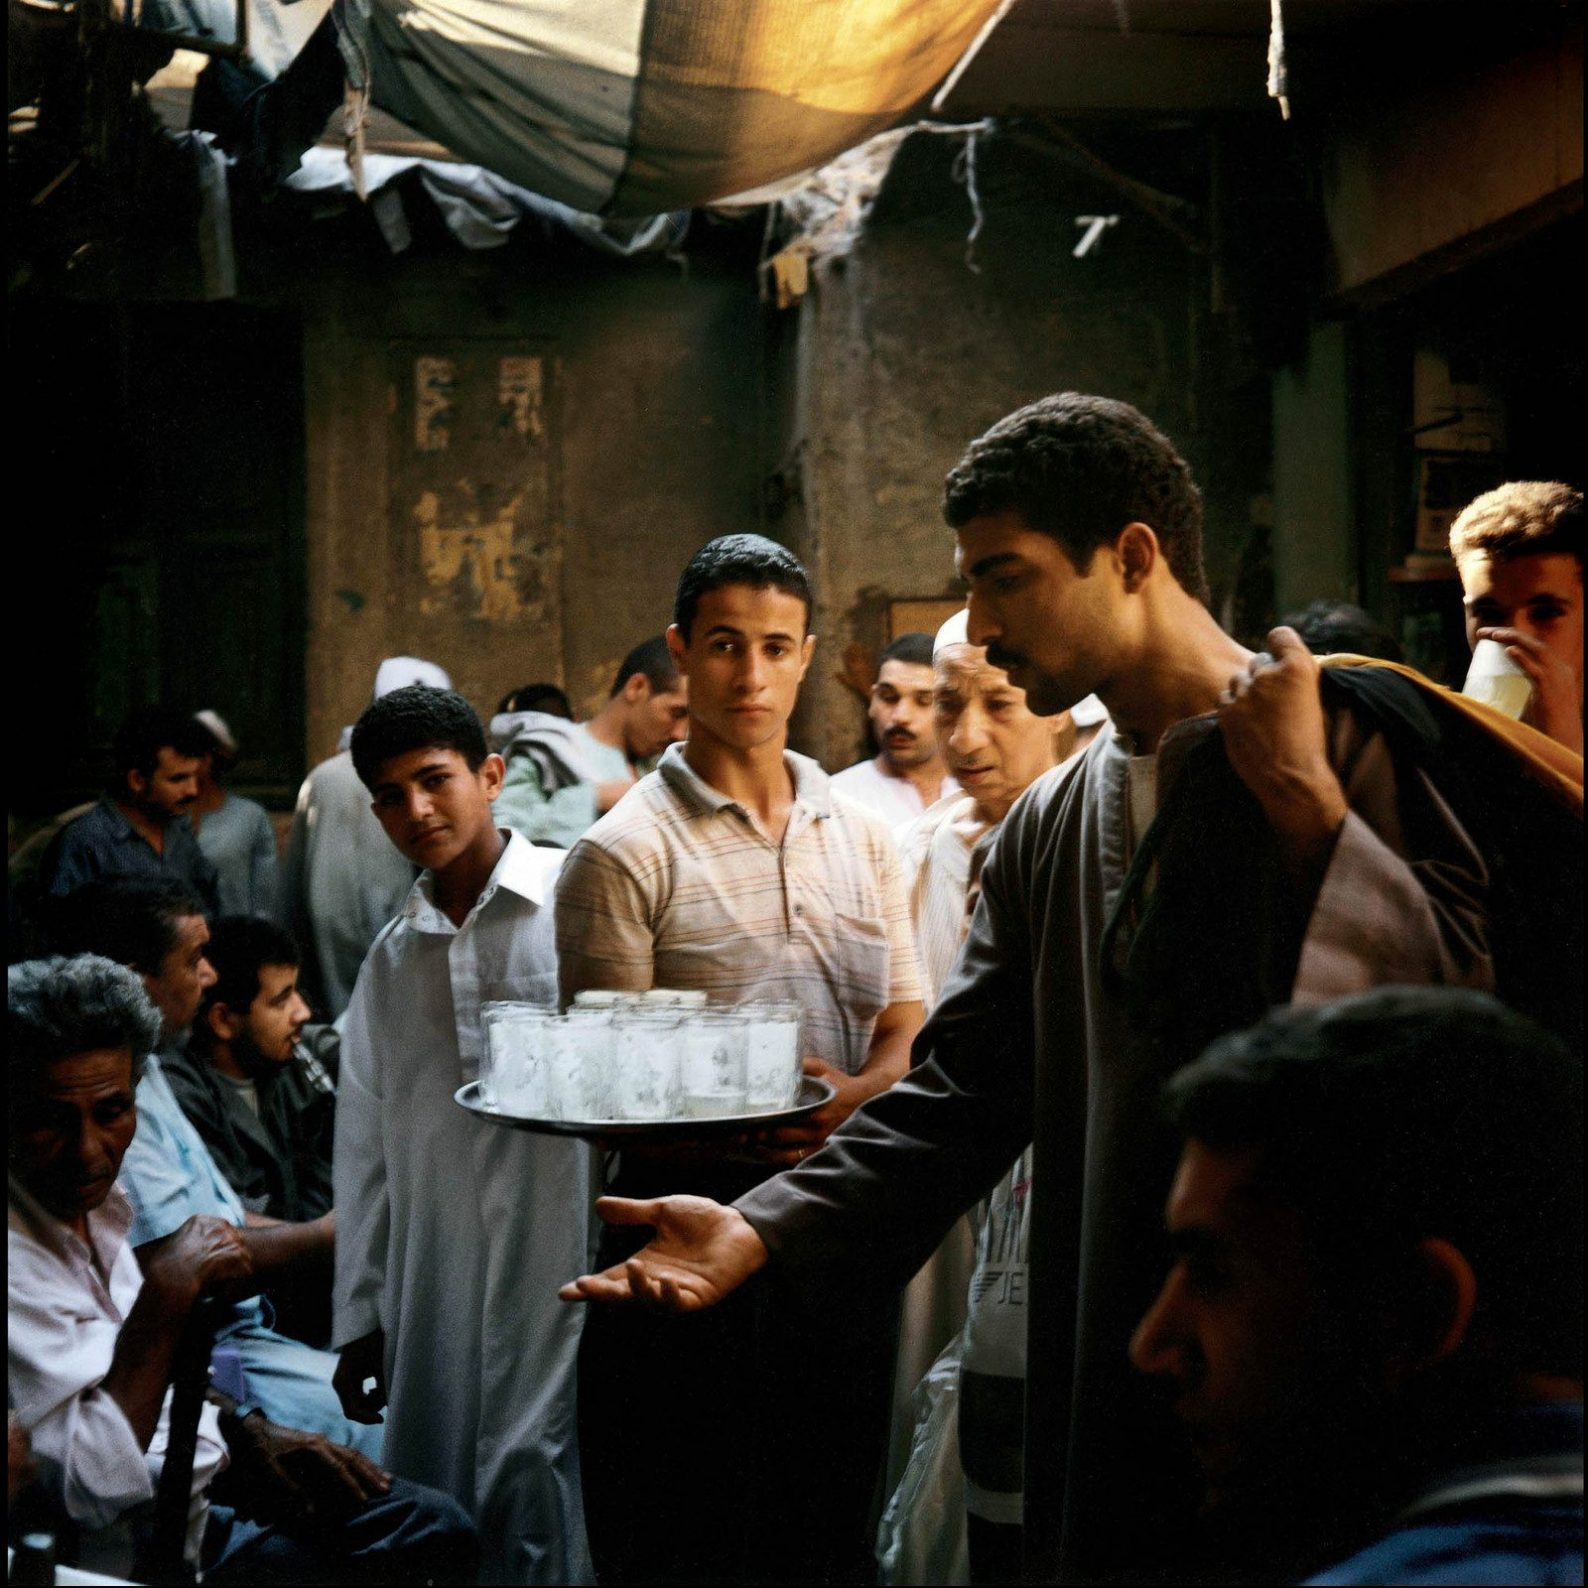 A limonade salesman in the souk, Cairo, 2000 photograph by Denis Dailleux